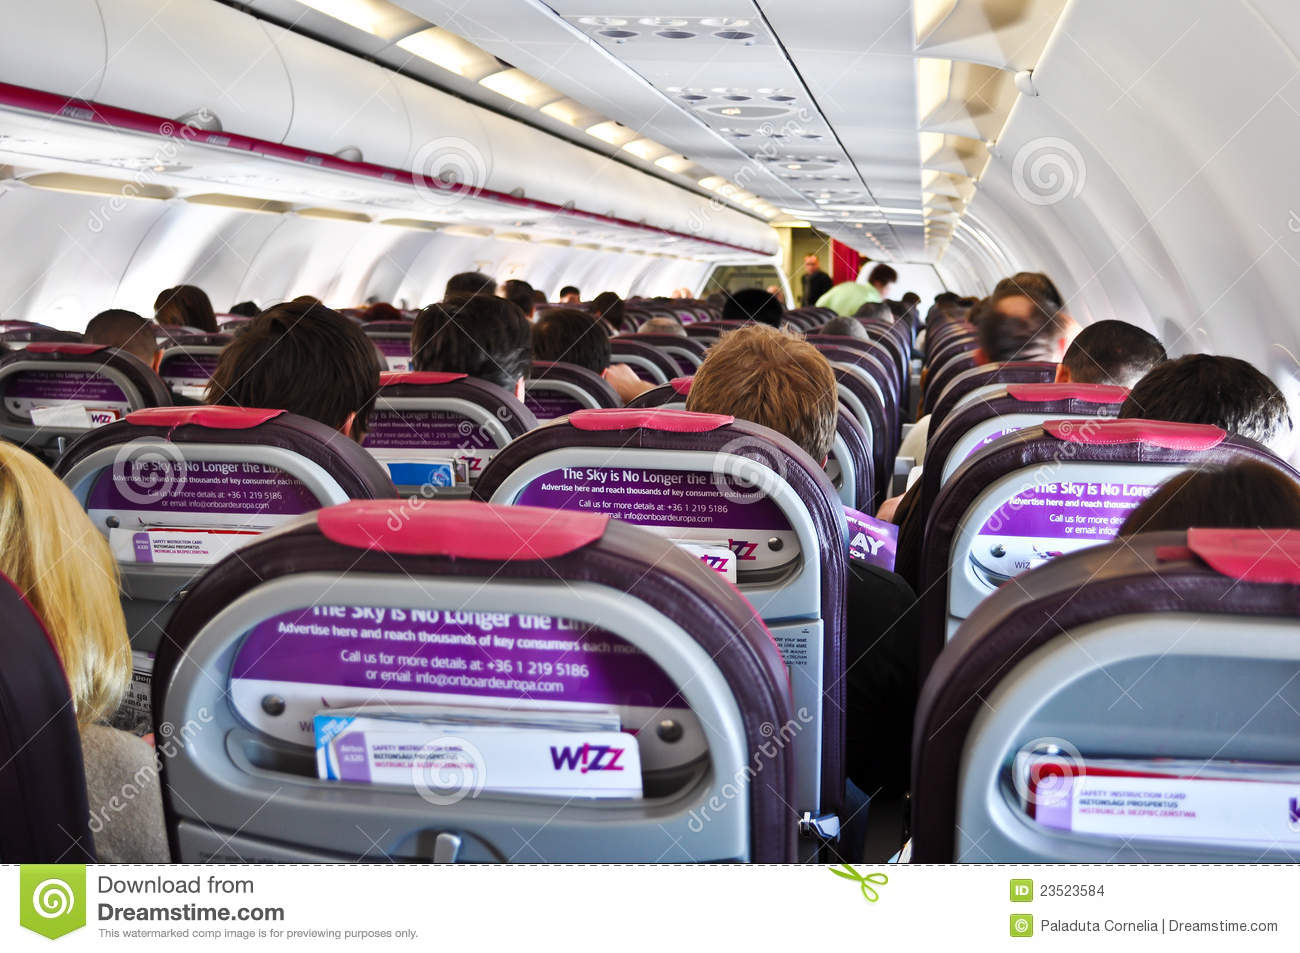 Inside A Plane Wizzair Editorial Stock Image Image Of Comfortable 23523584